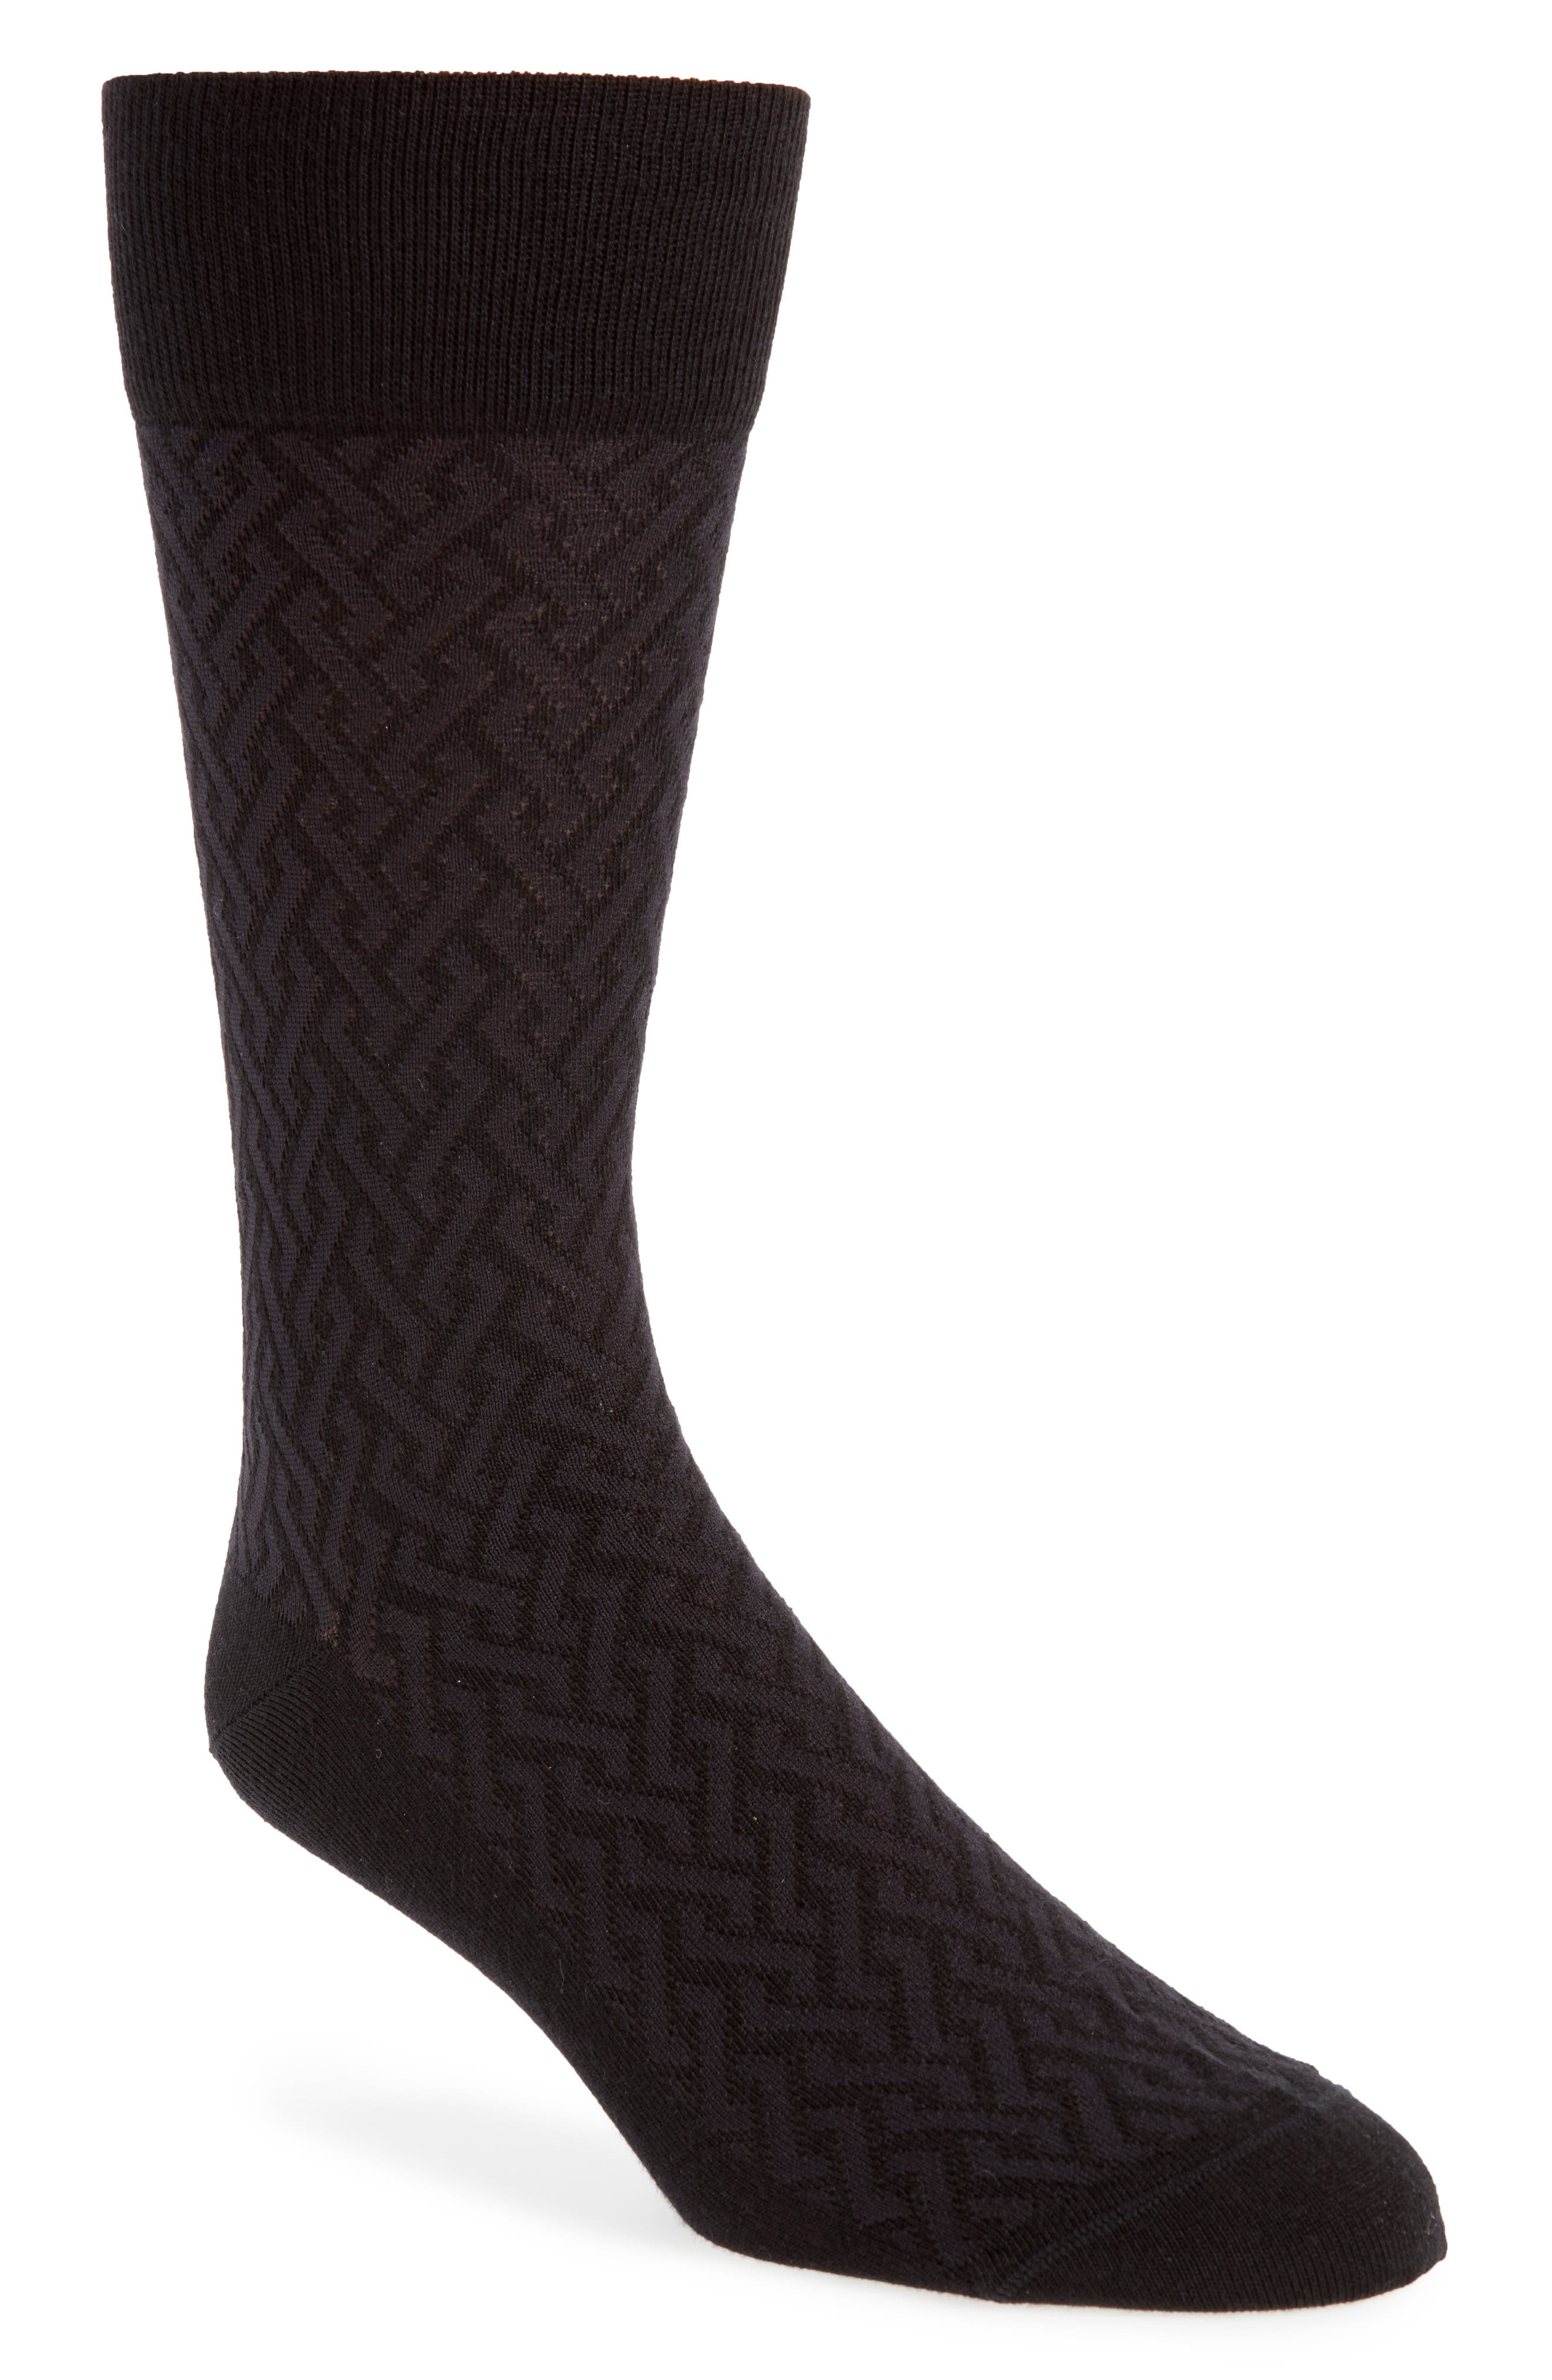 Intertwined Lines Socks,                         Main,                         color, 001